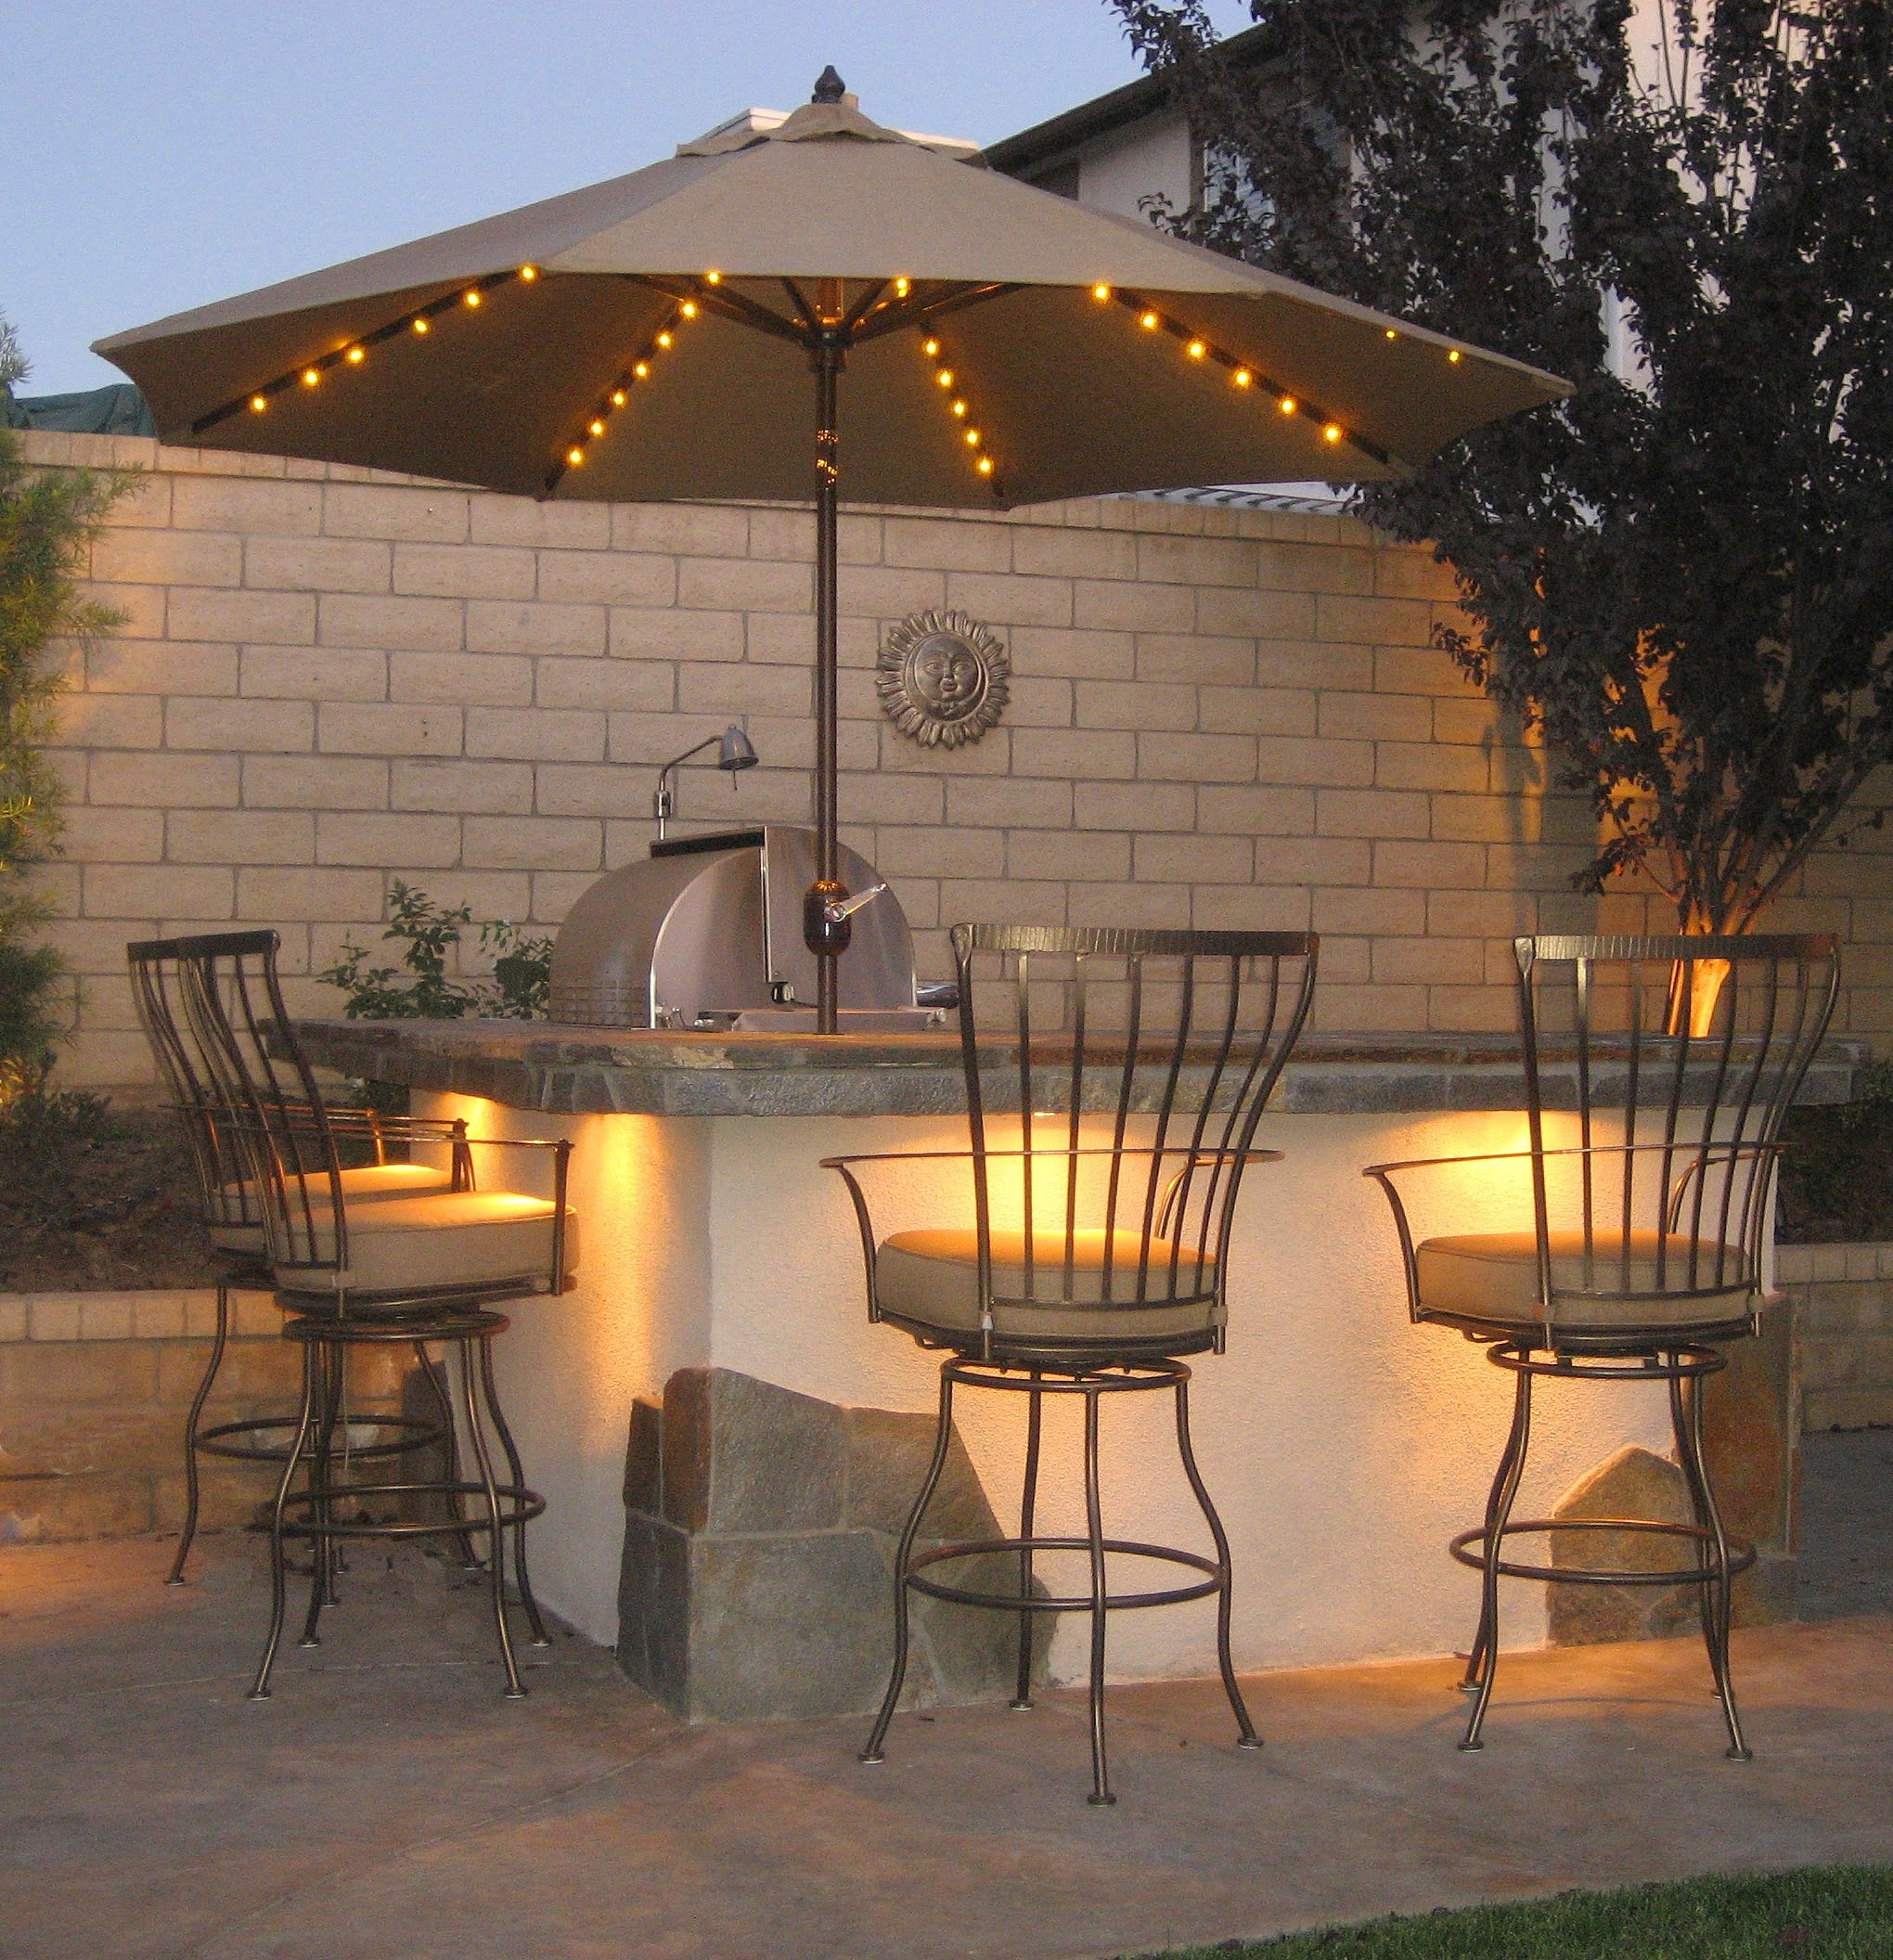 Lighted Patio Umbrellas Intended For Recent Lighted Patio Umbrellas — Mistikcamping Home Design : Different (View 12 of 20)